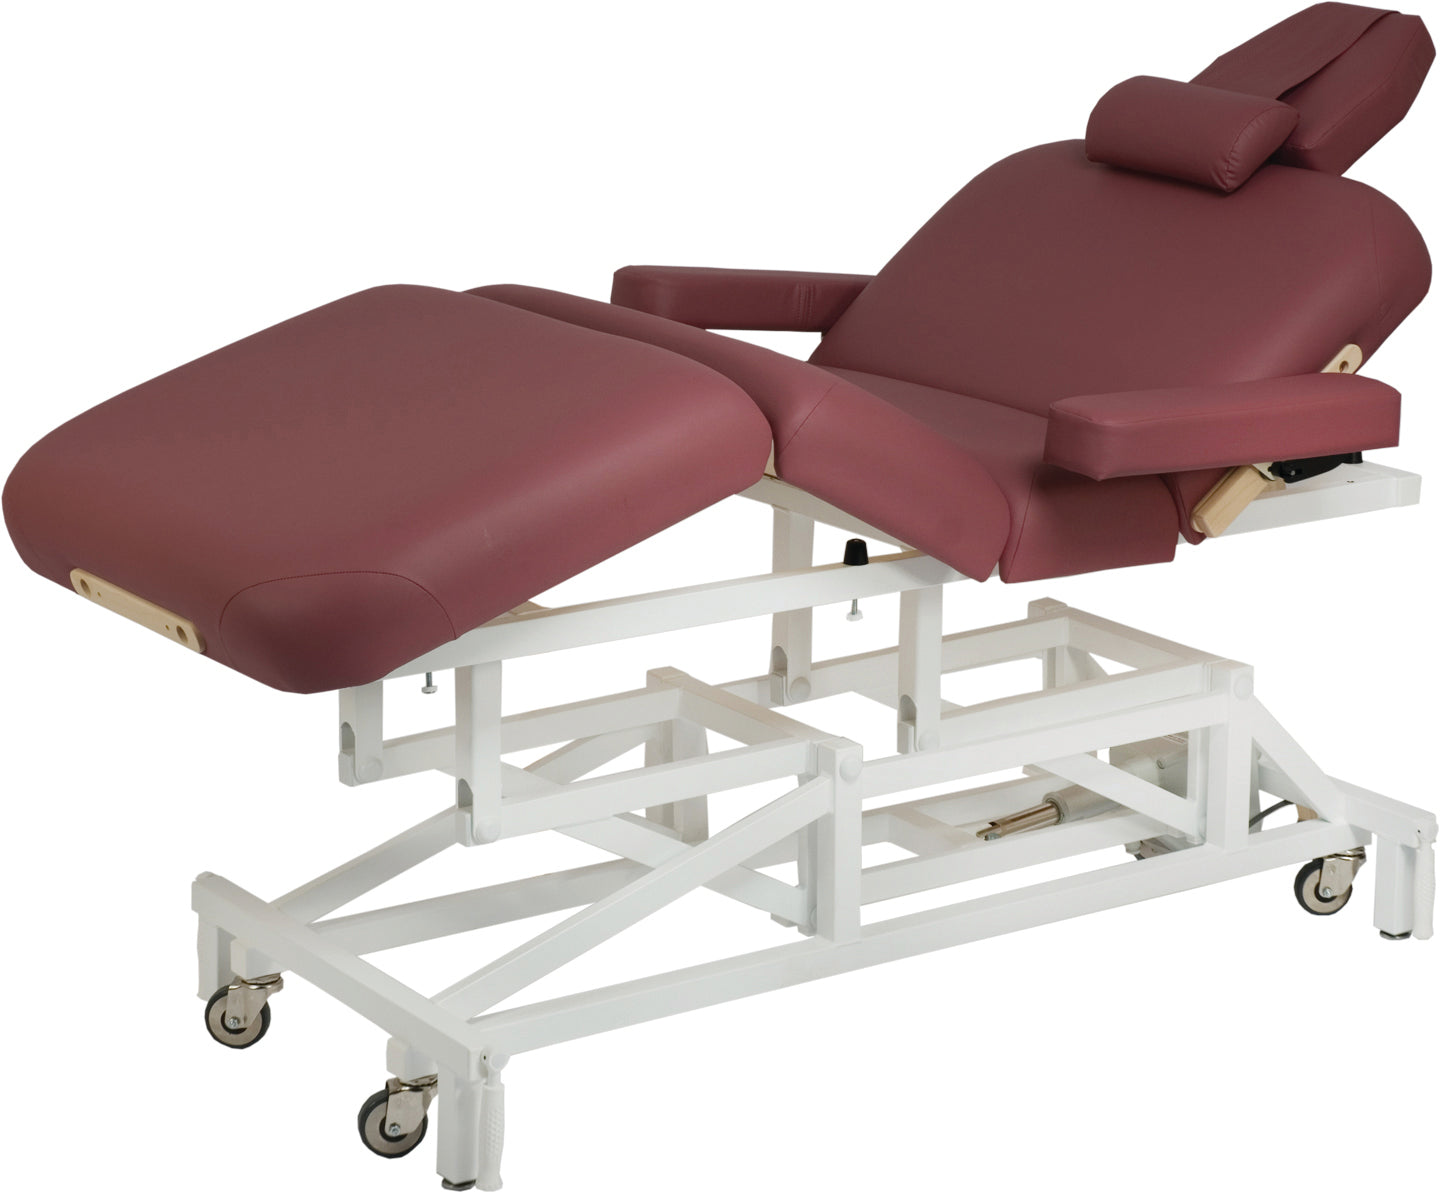 Custom Craftworks - McKenzie Deluxe Electric Lift Massage Table - Superb Massage Tables